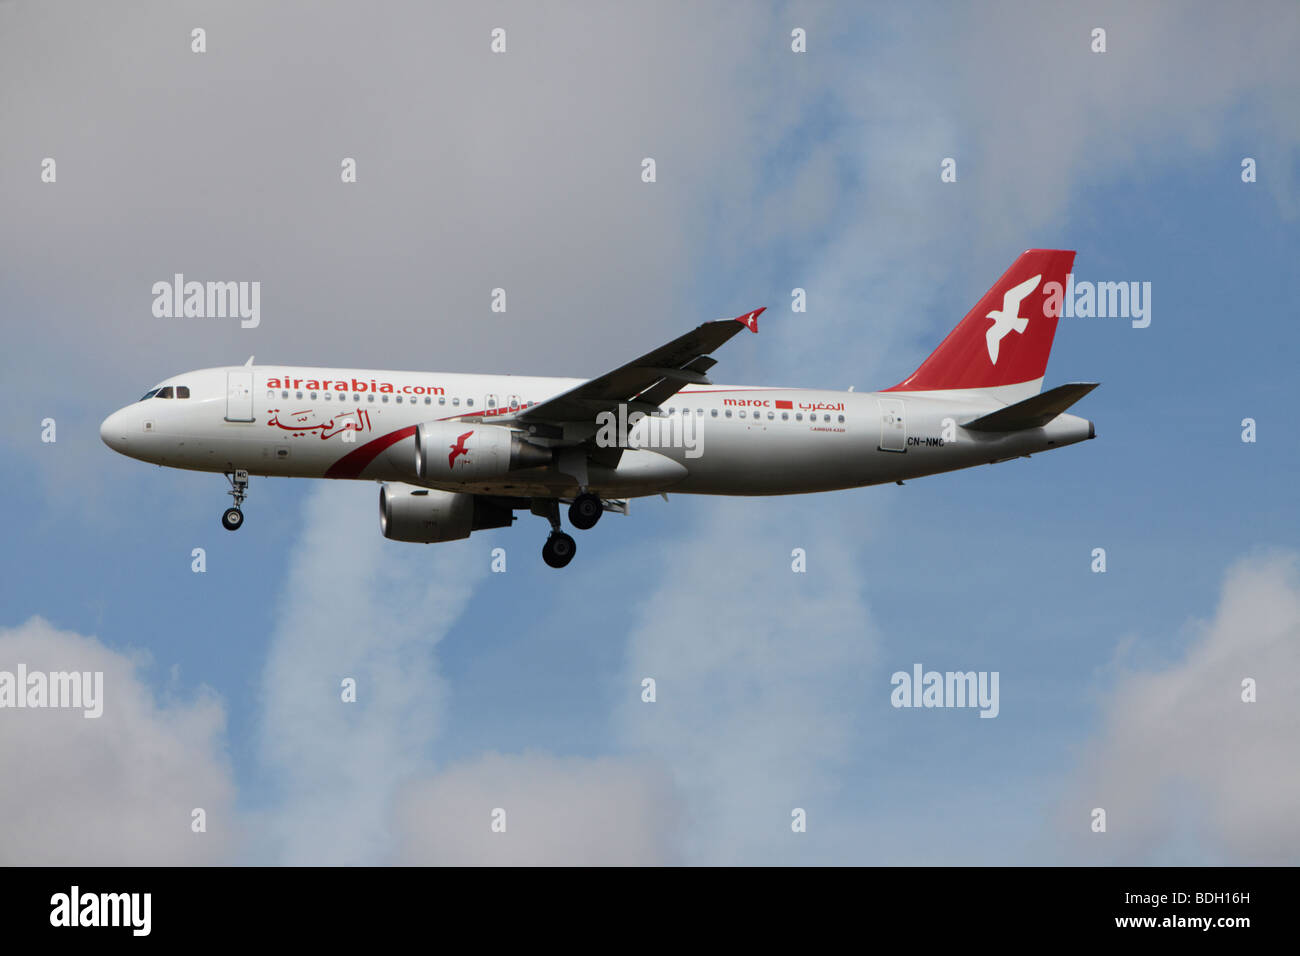 Air Arabia Maroc Airbus A320-214 on final approach at Stansted Airport, Essex, England, United Kingdom Stock Photo